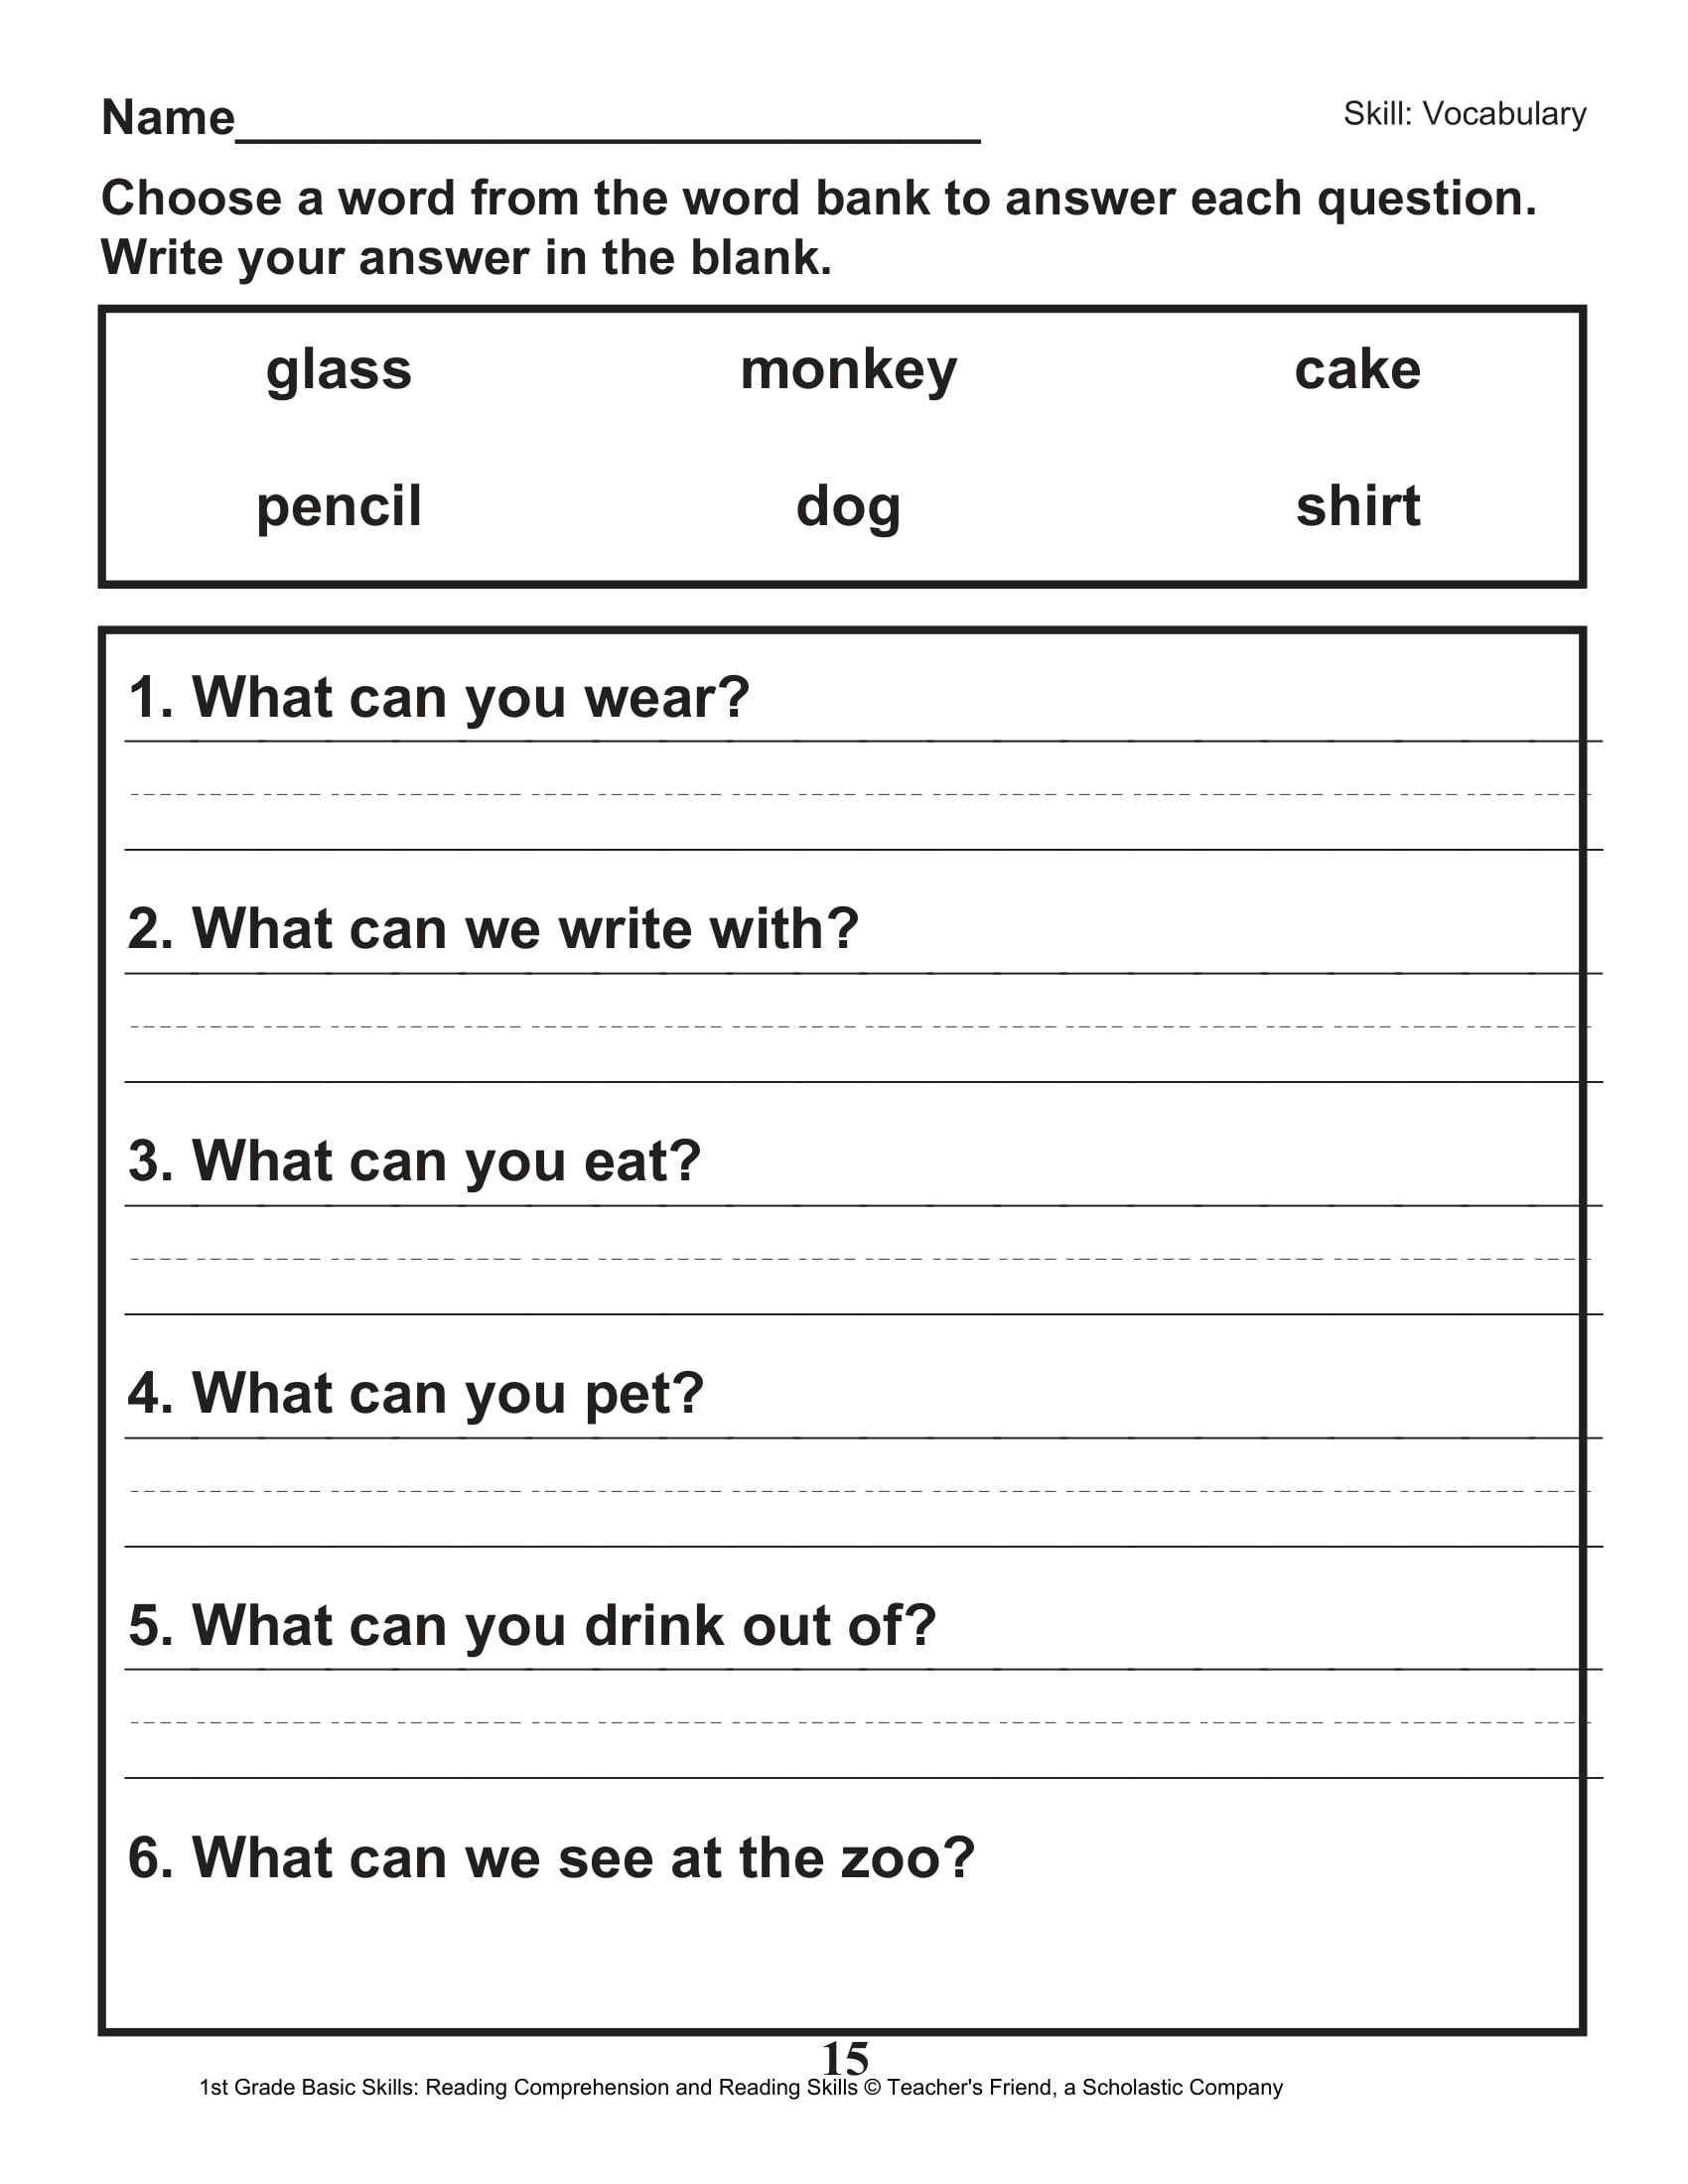 40 Scholastic 1st Grade Reading Comprehension Skills ...